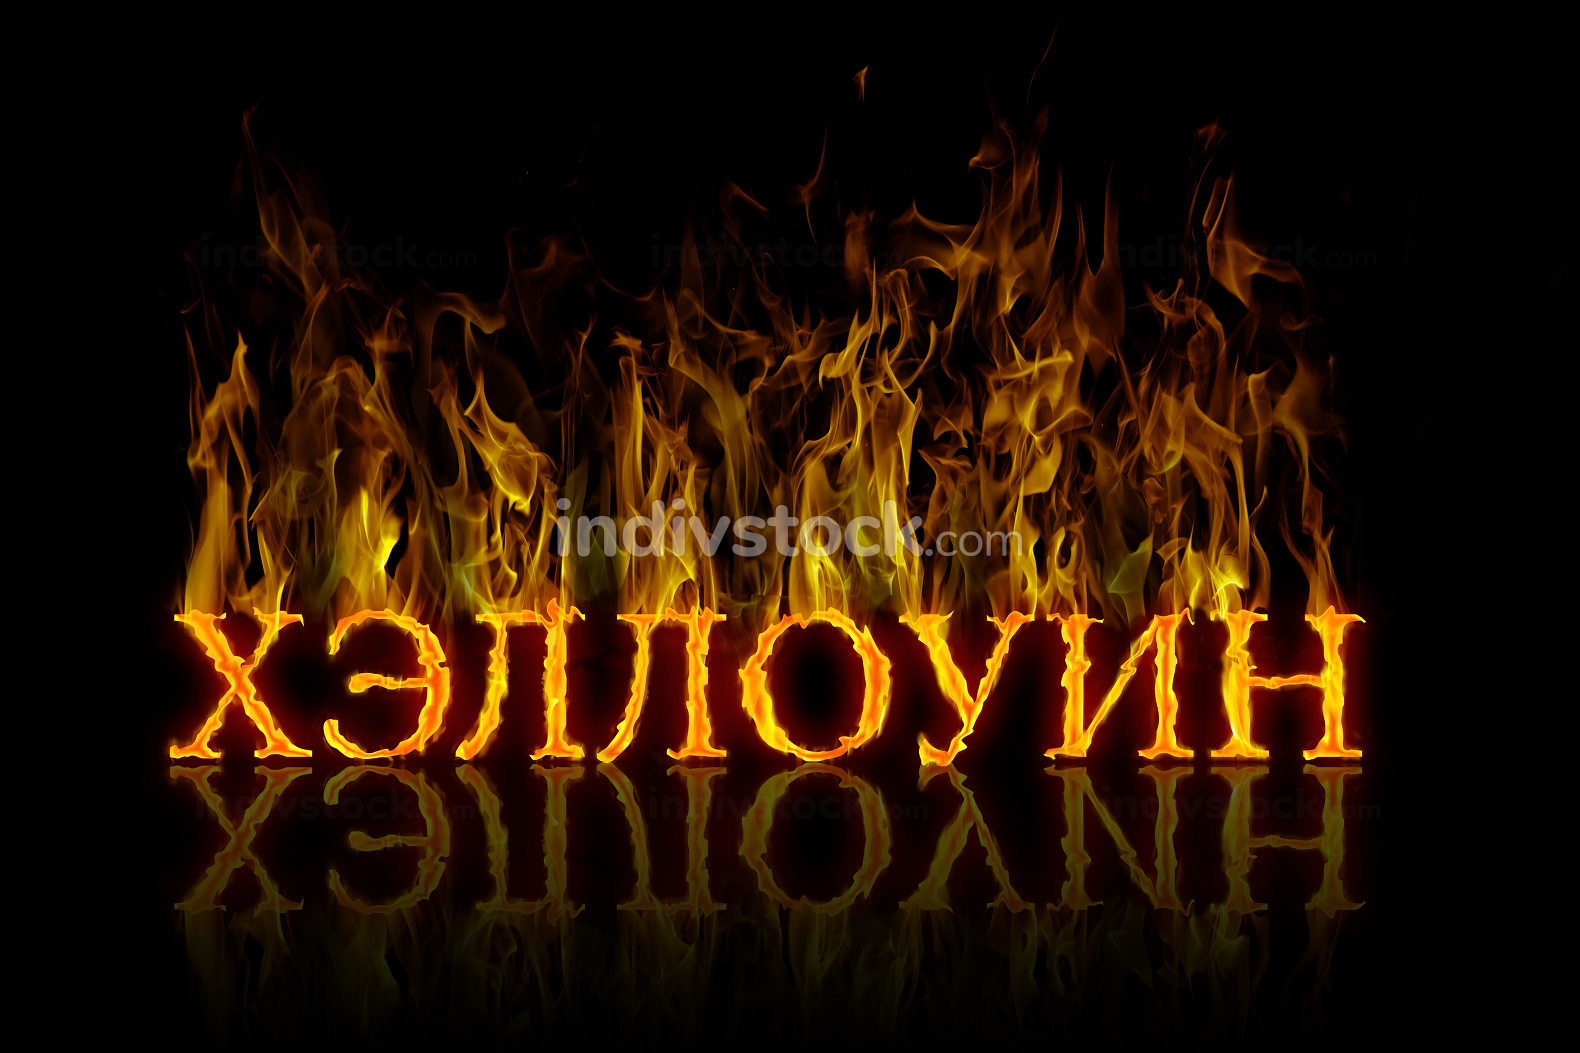 Halloween letterin in russian language burning on fire